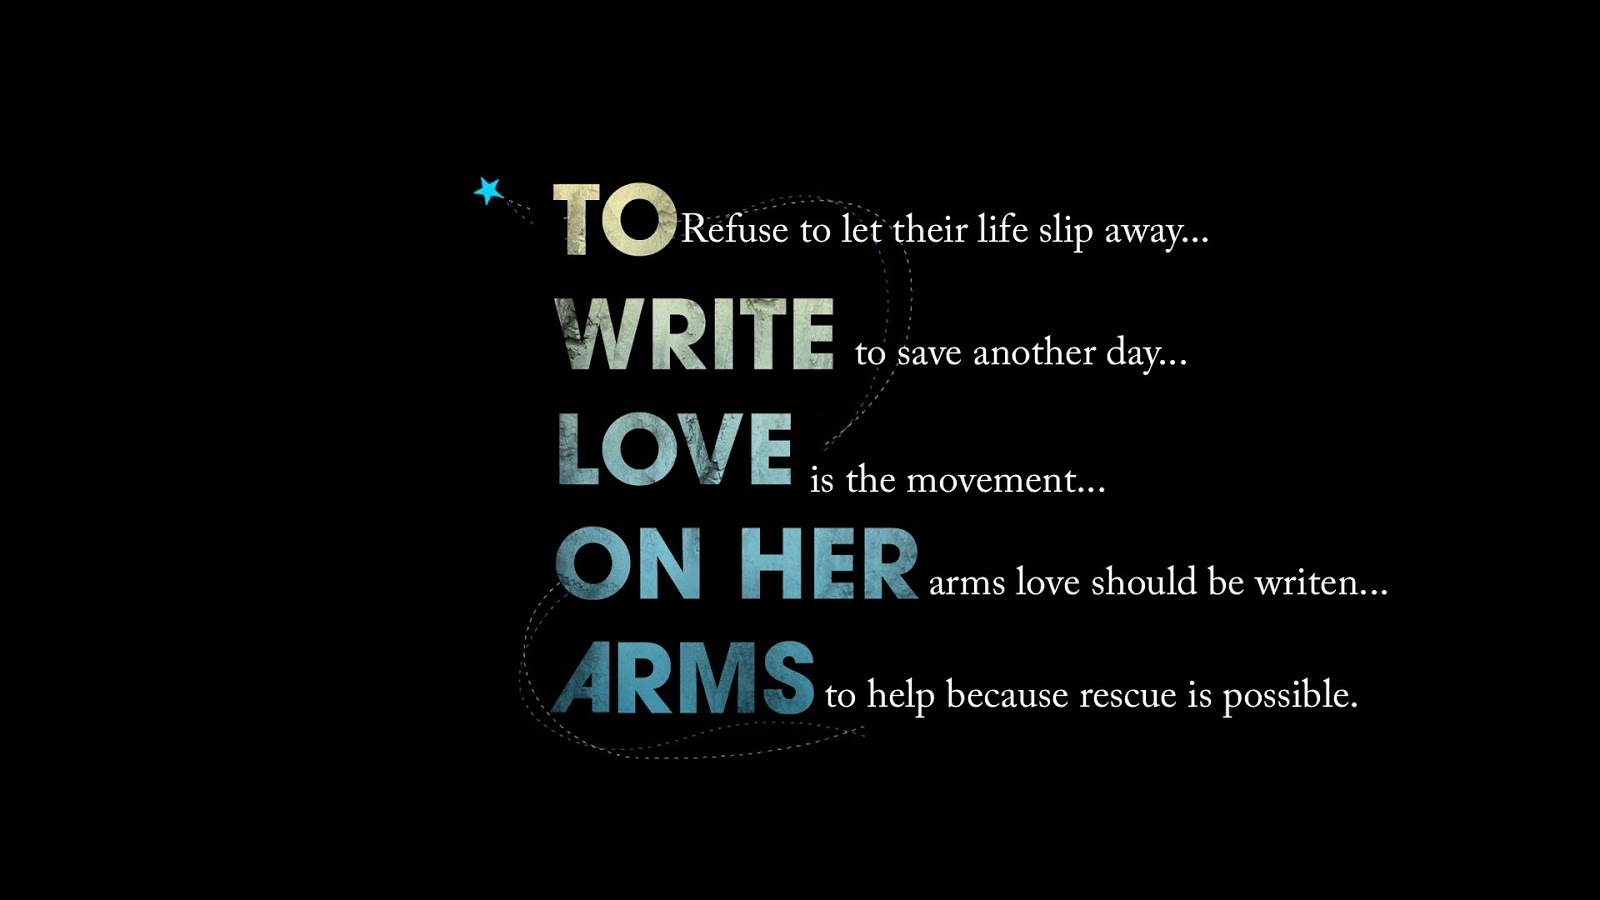 love quotes amazing wallpapers - photo #4